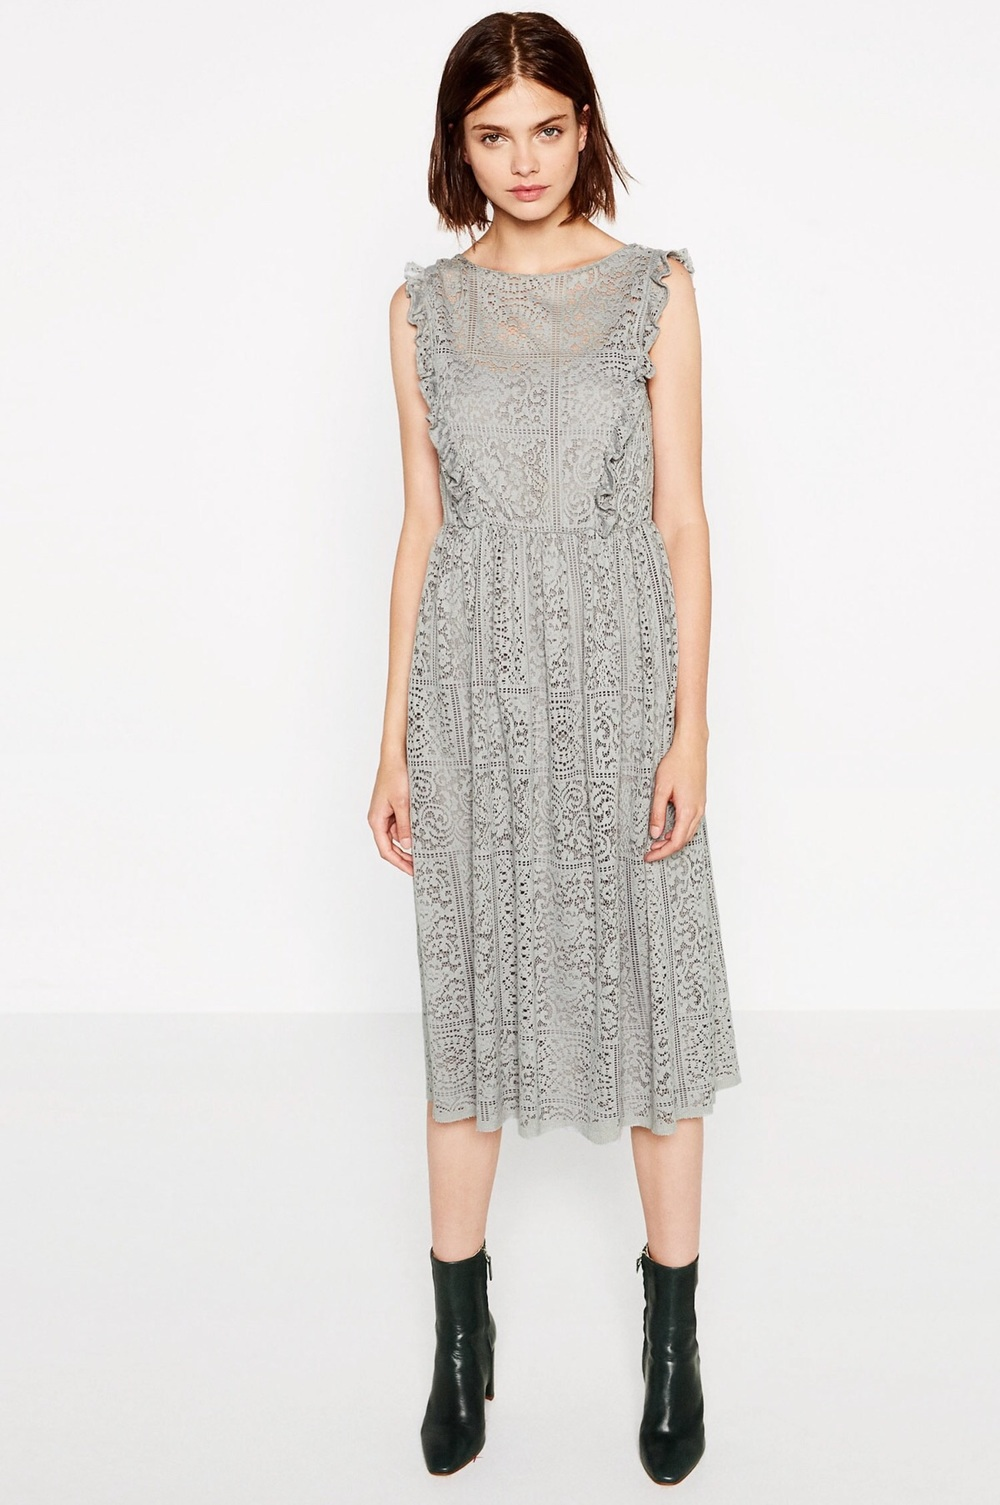 Gray Lace Dress From Zara 449 Dkk